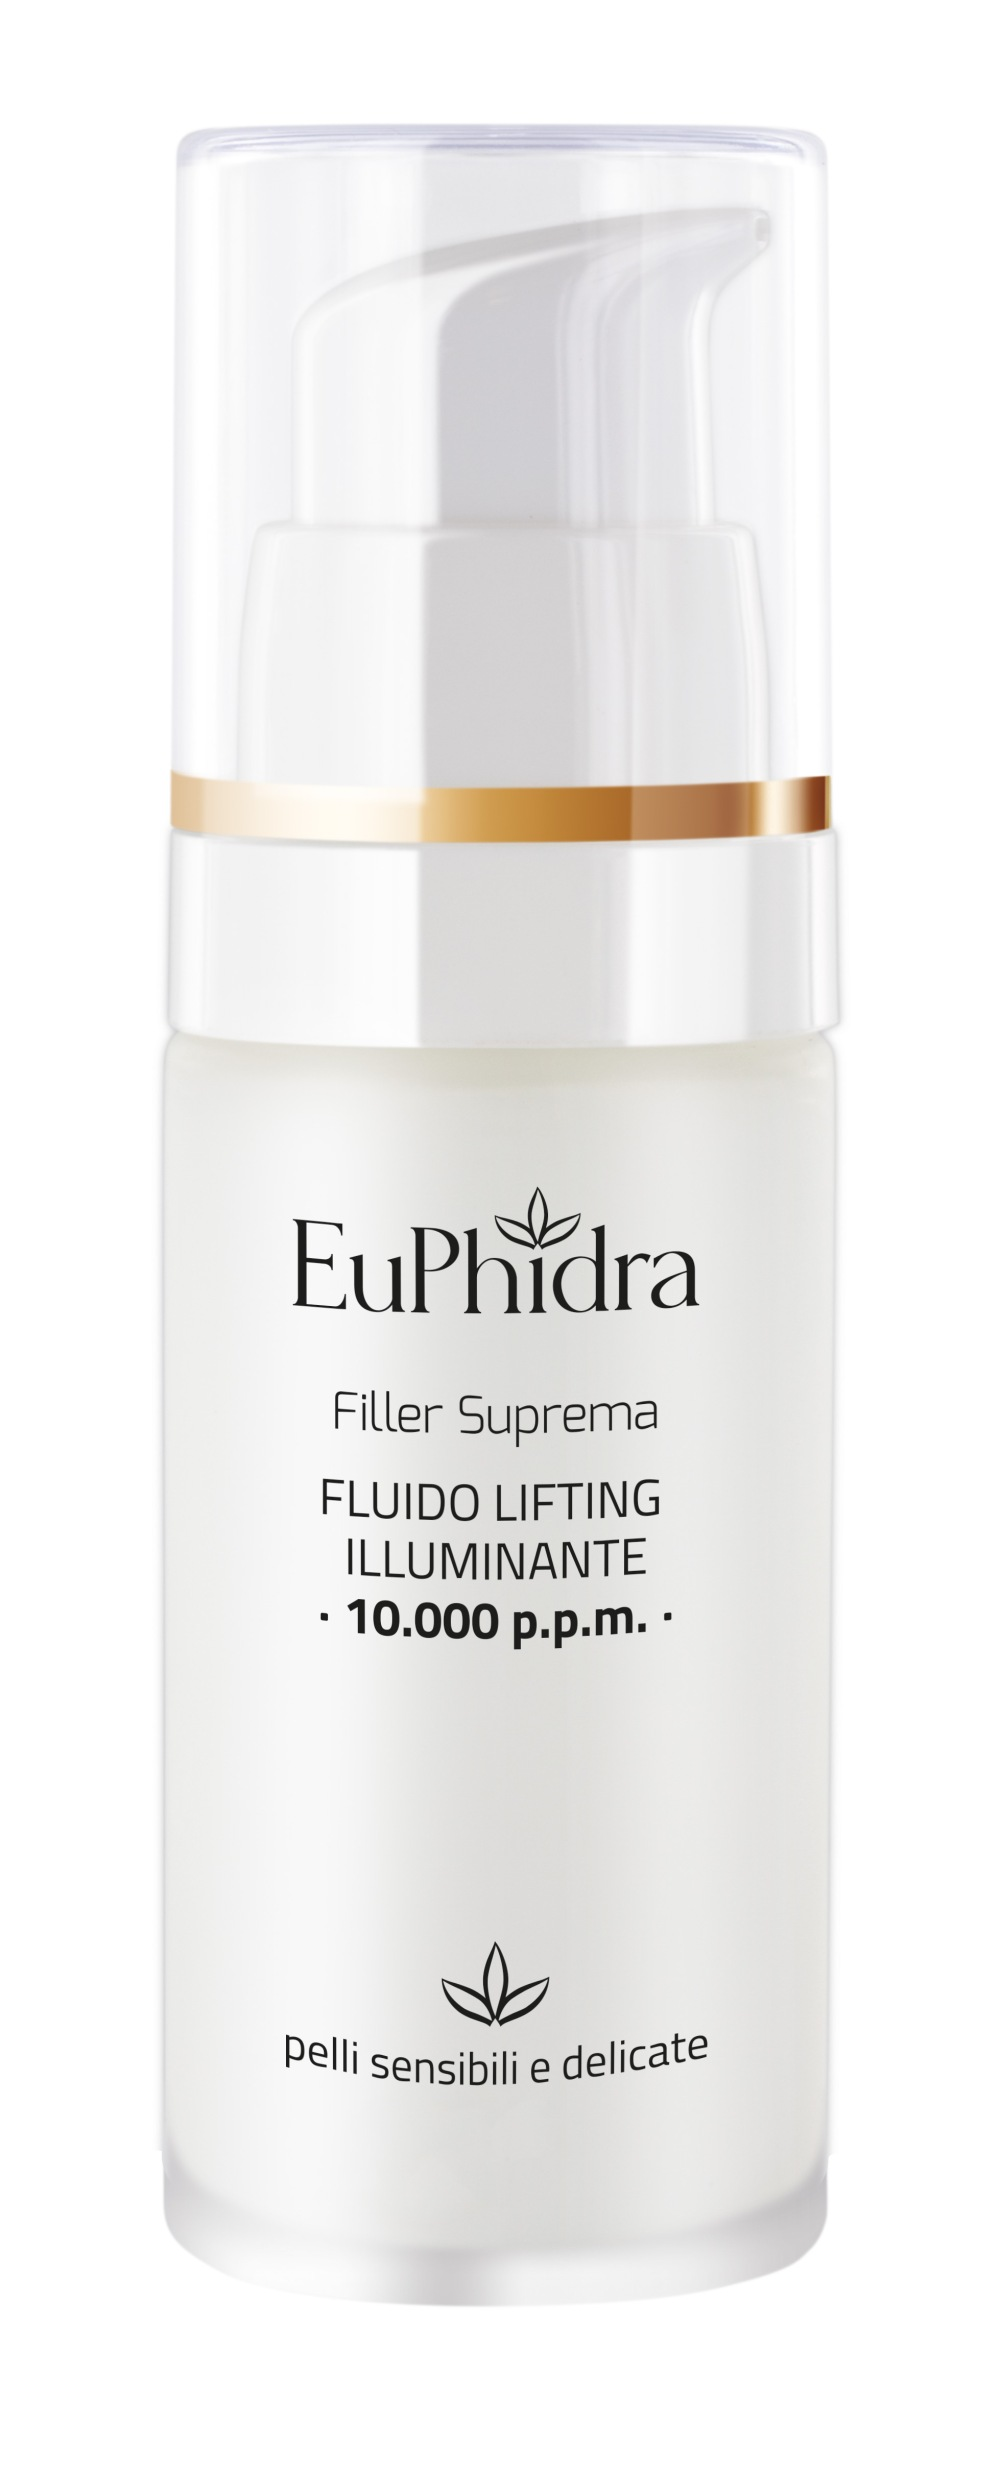 fillersuprema_fluido_lifting-illuminante